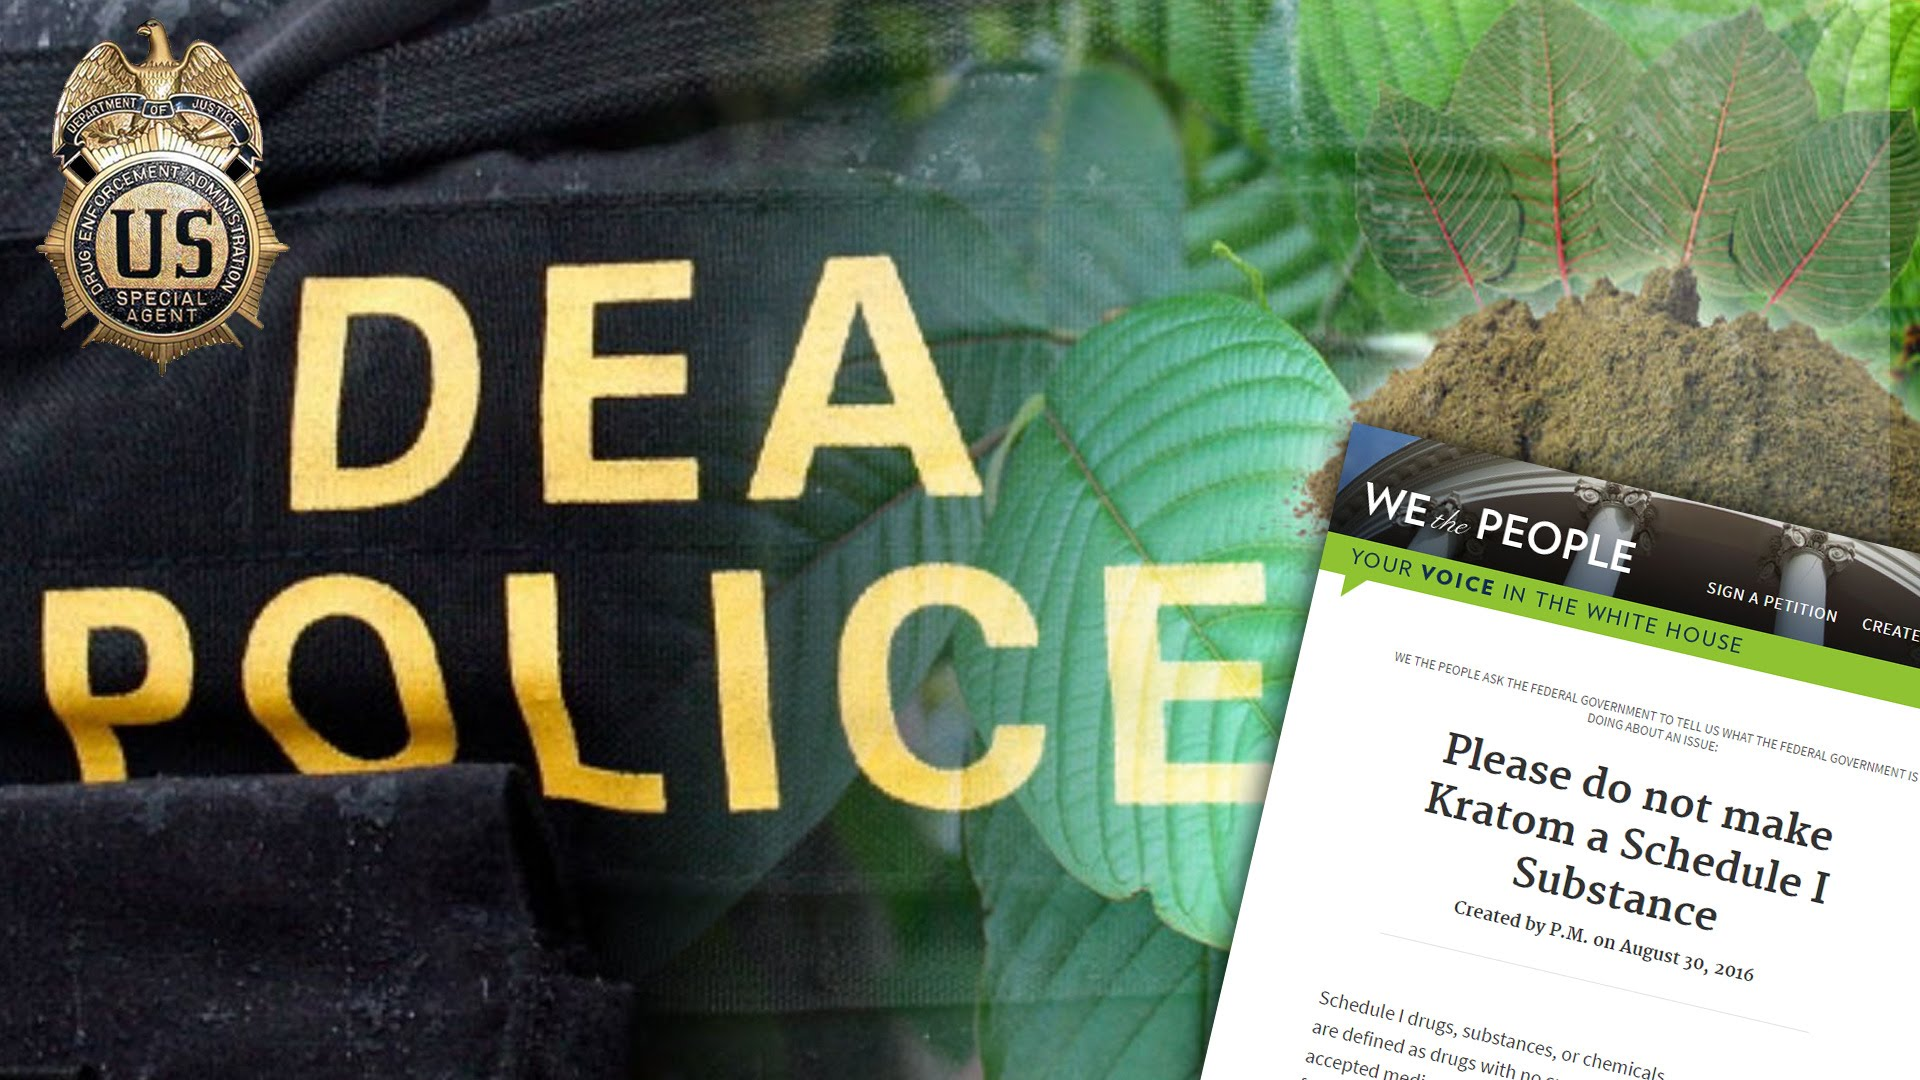 A Big Question Remains Unanswered: Is Kratom Still Legal?